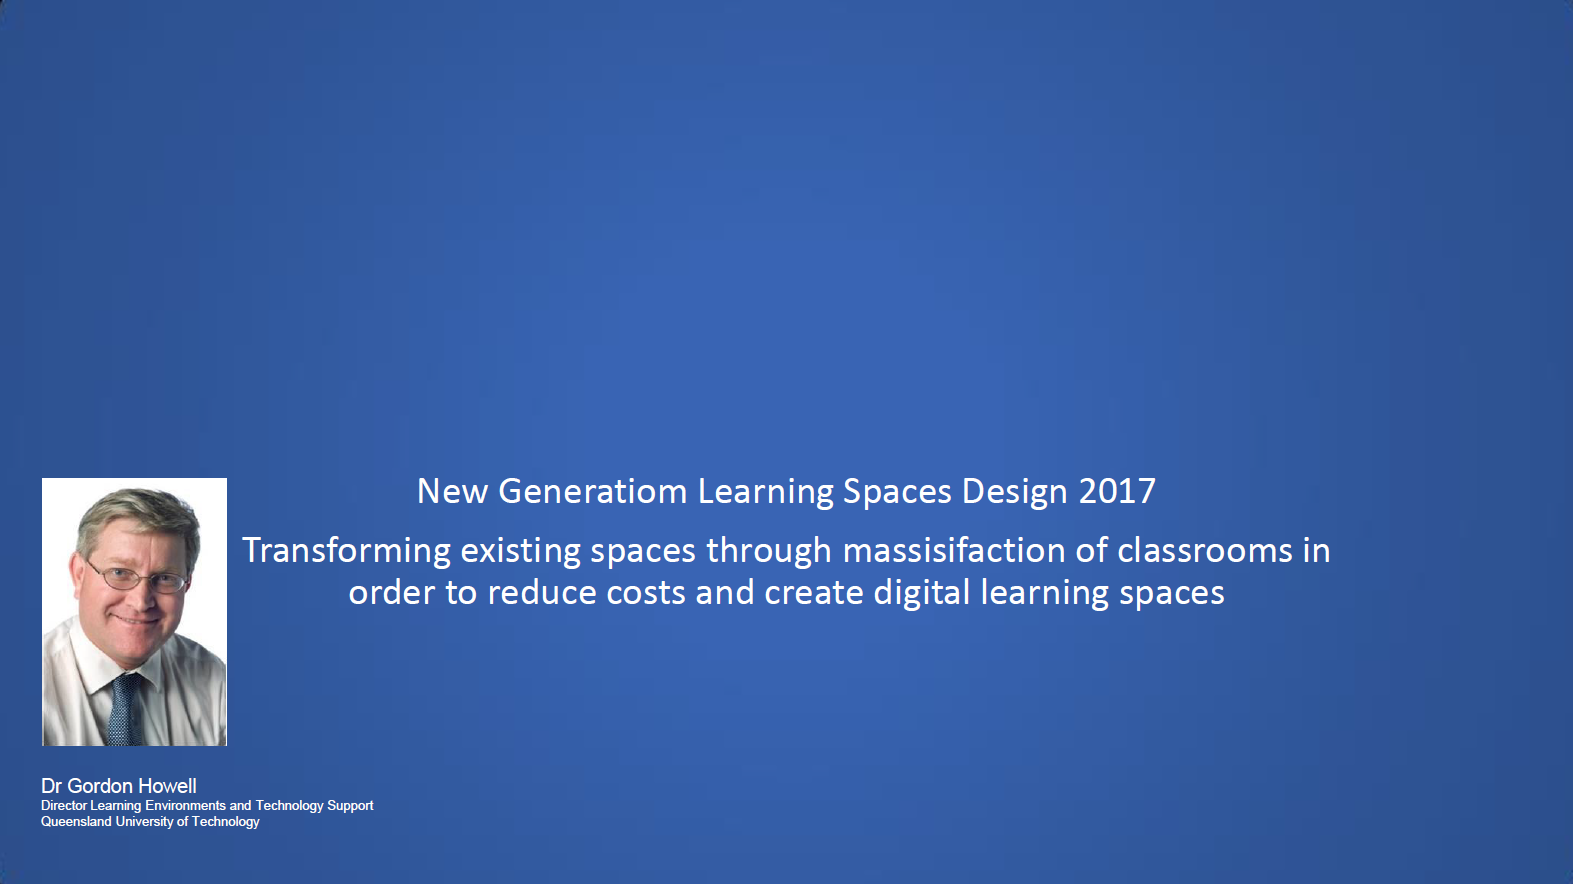 Transforming Existing Spaces through Massification of Classrooms in Order to Reduce Costs and Create Digital Learning Environments